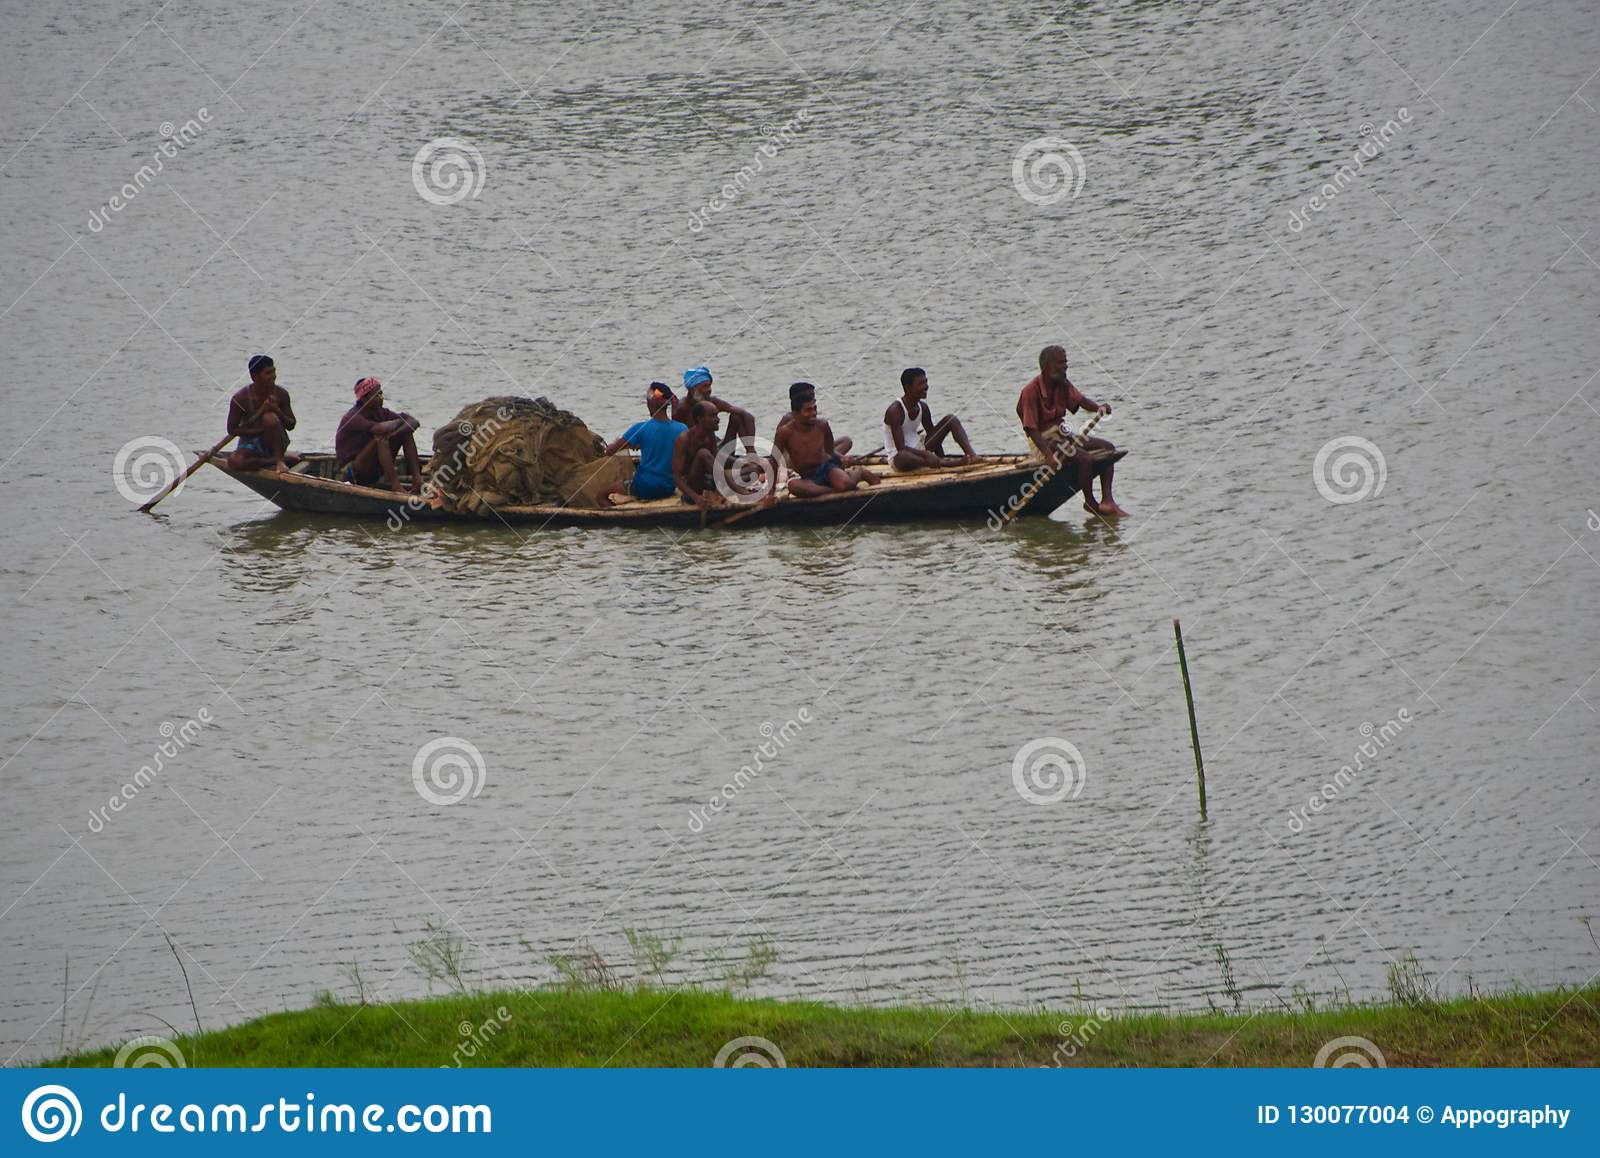 Fishermen travelling on a boat in the river